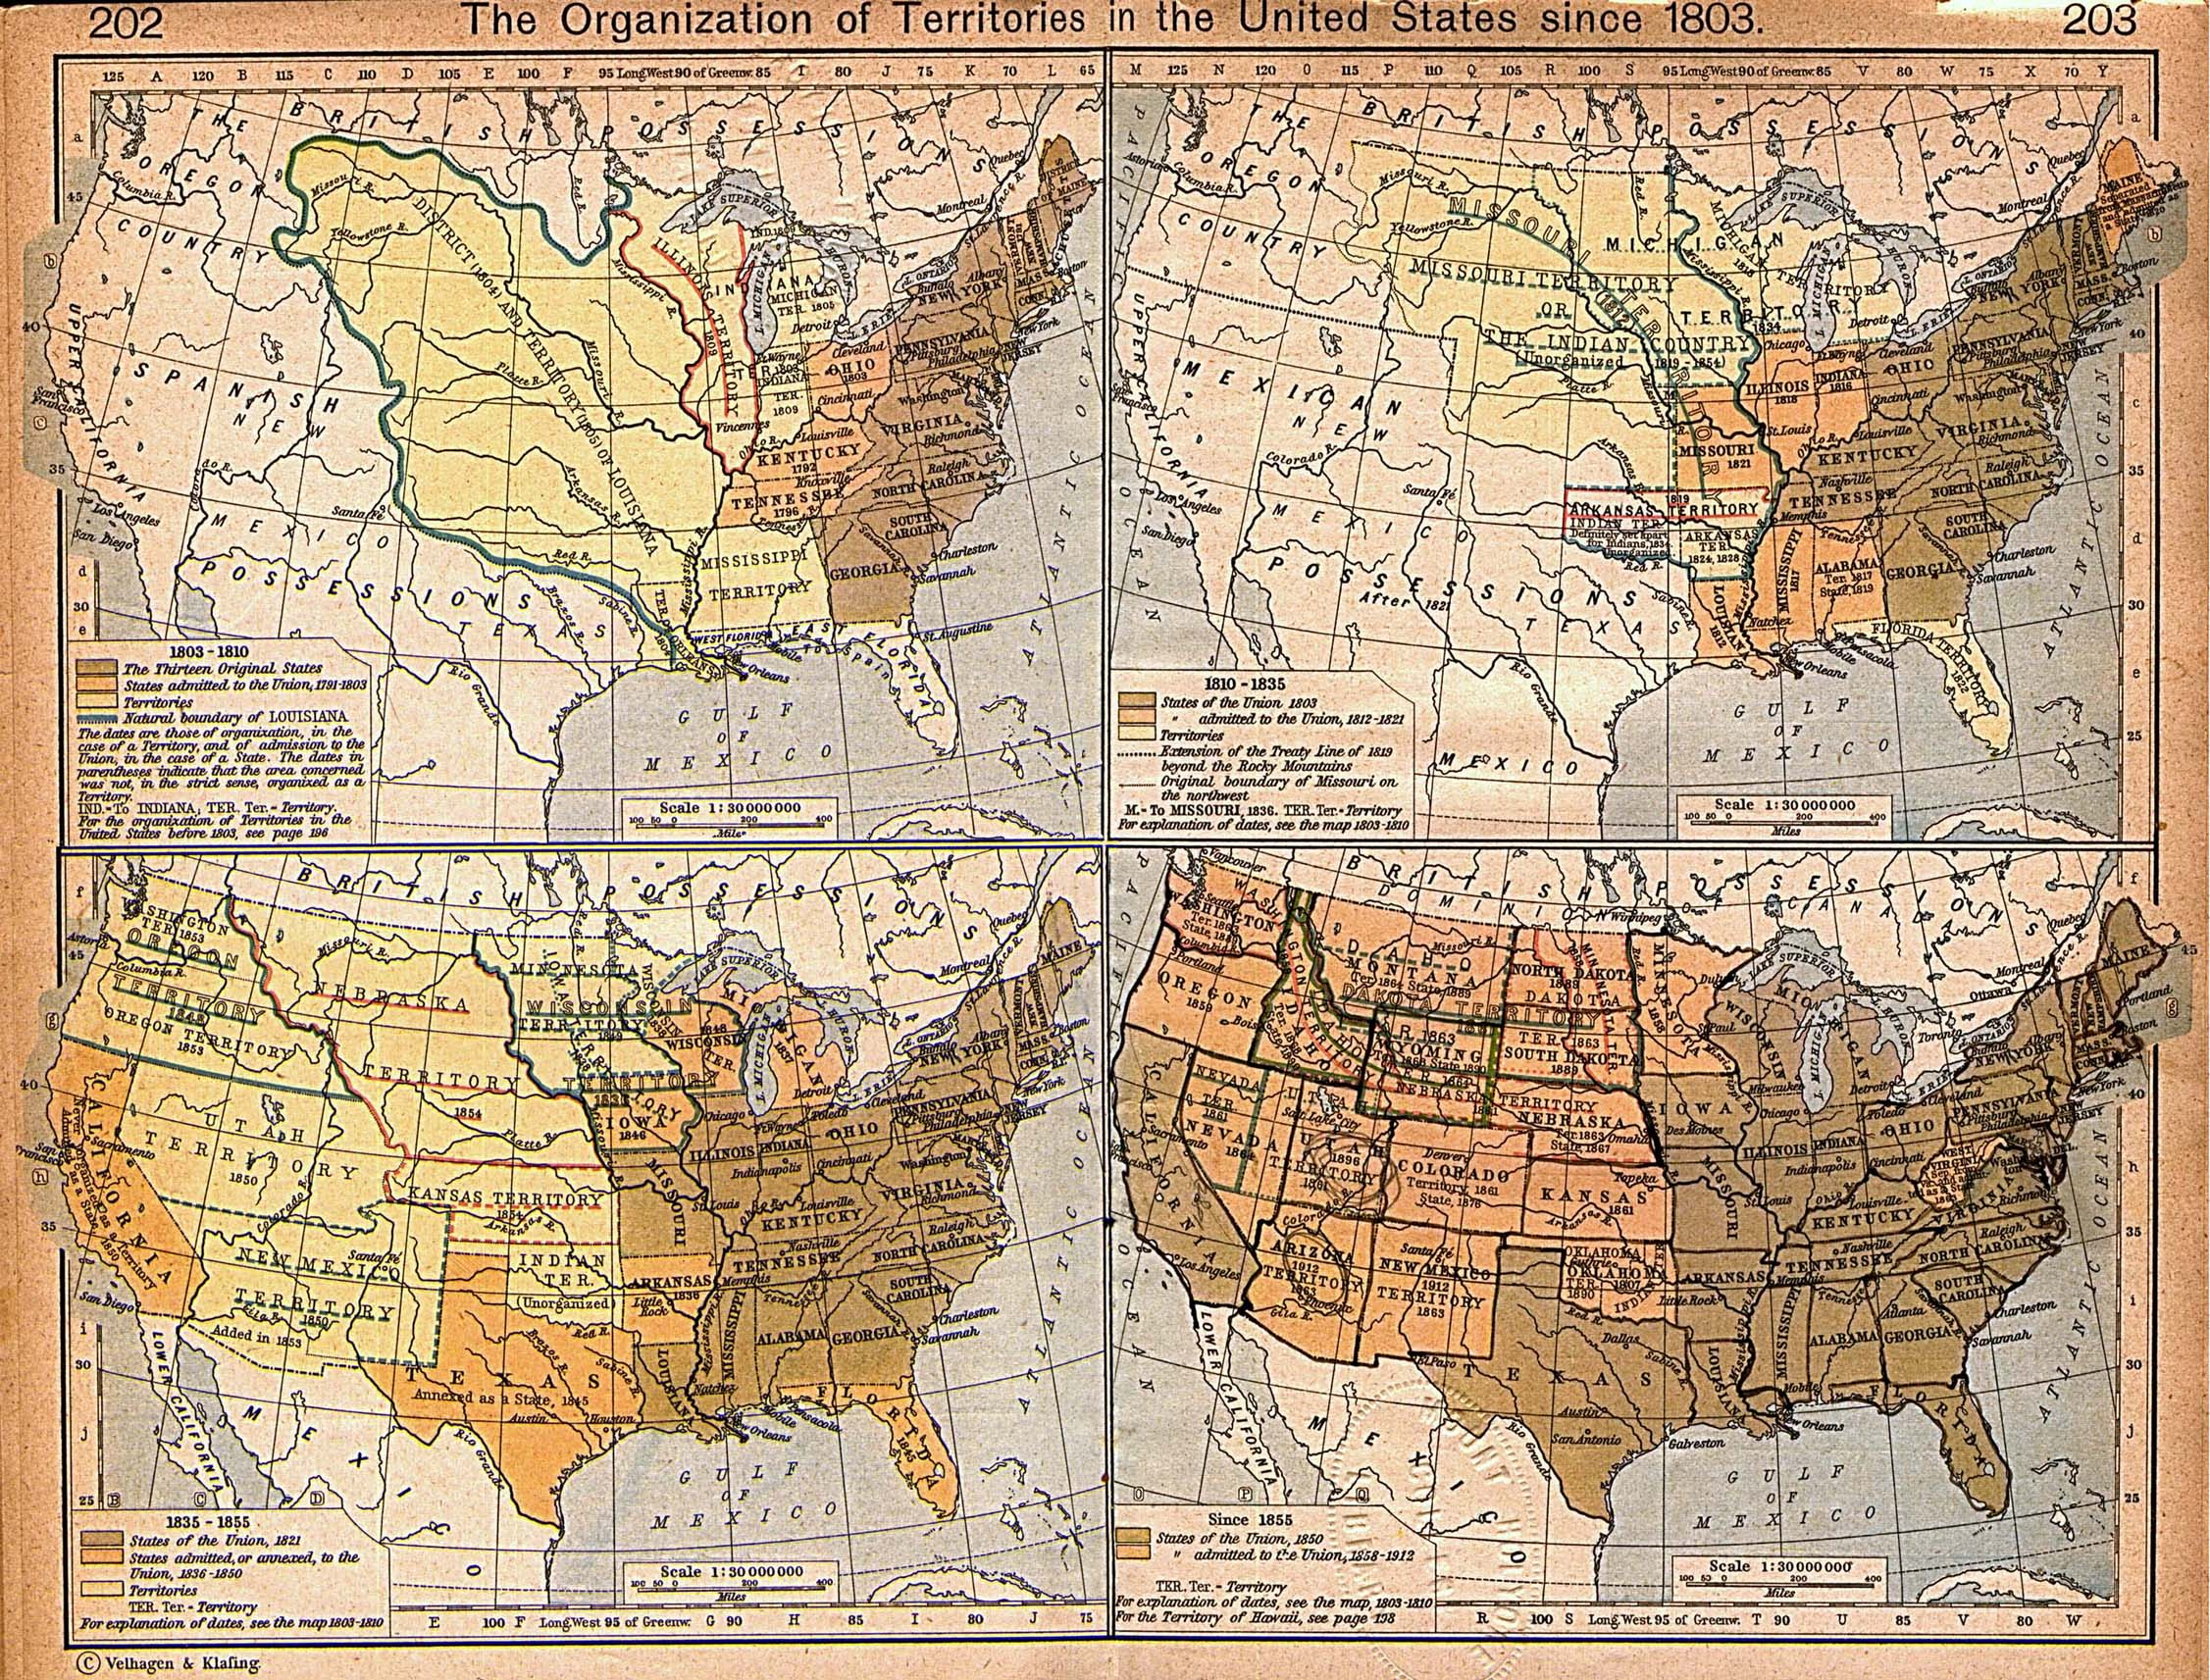 USA_Expansion_since_1803